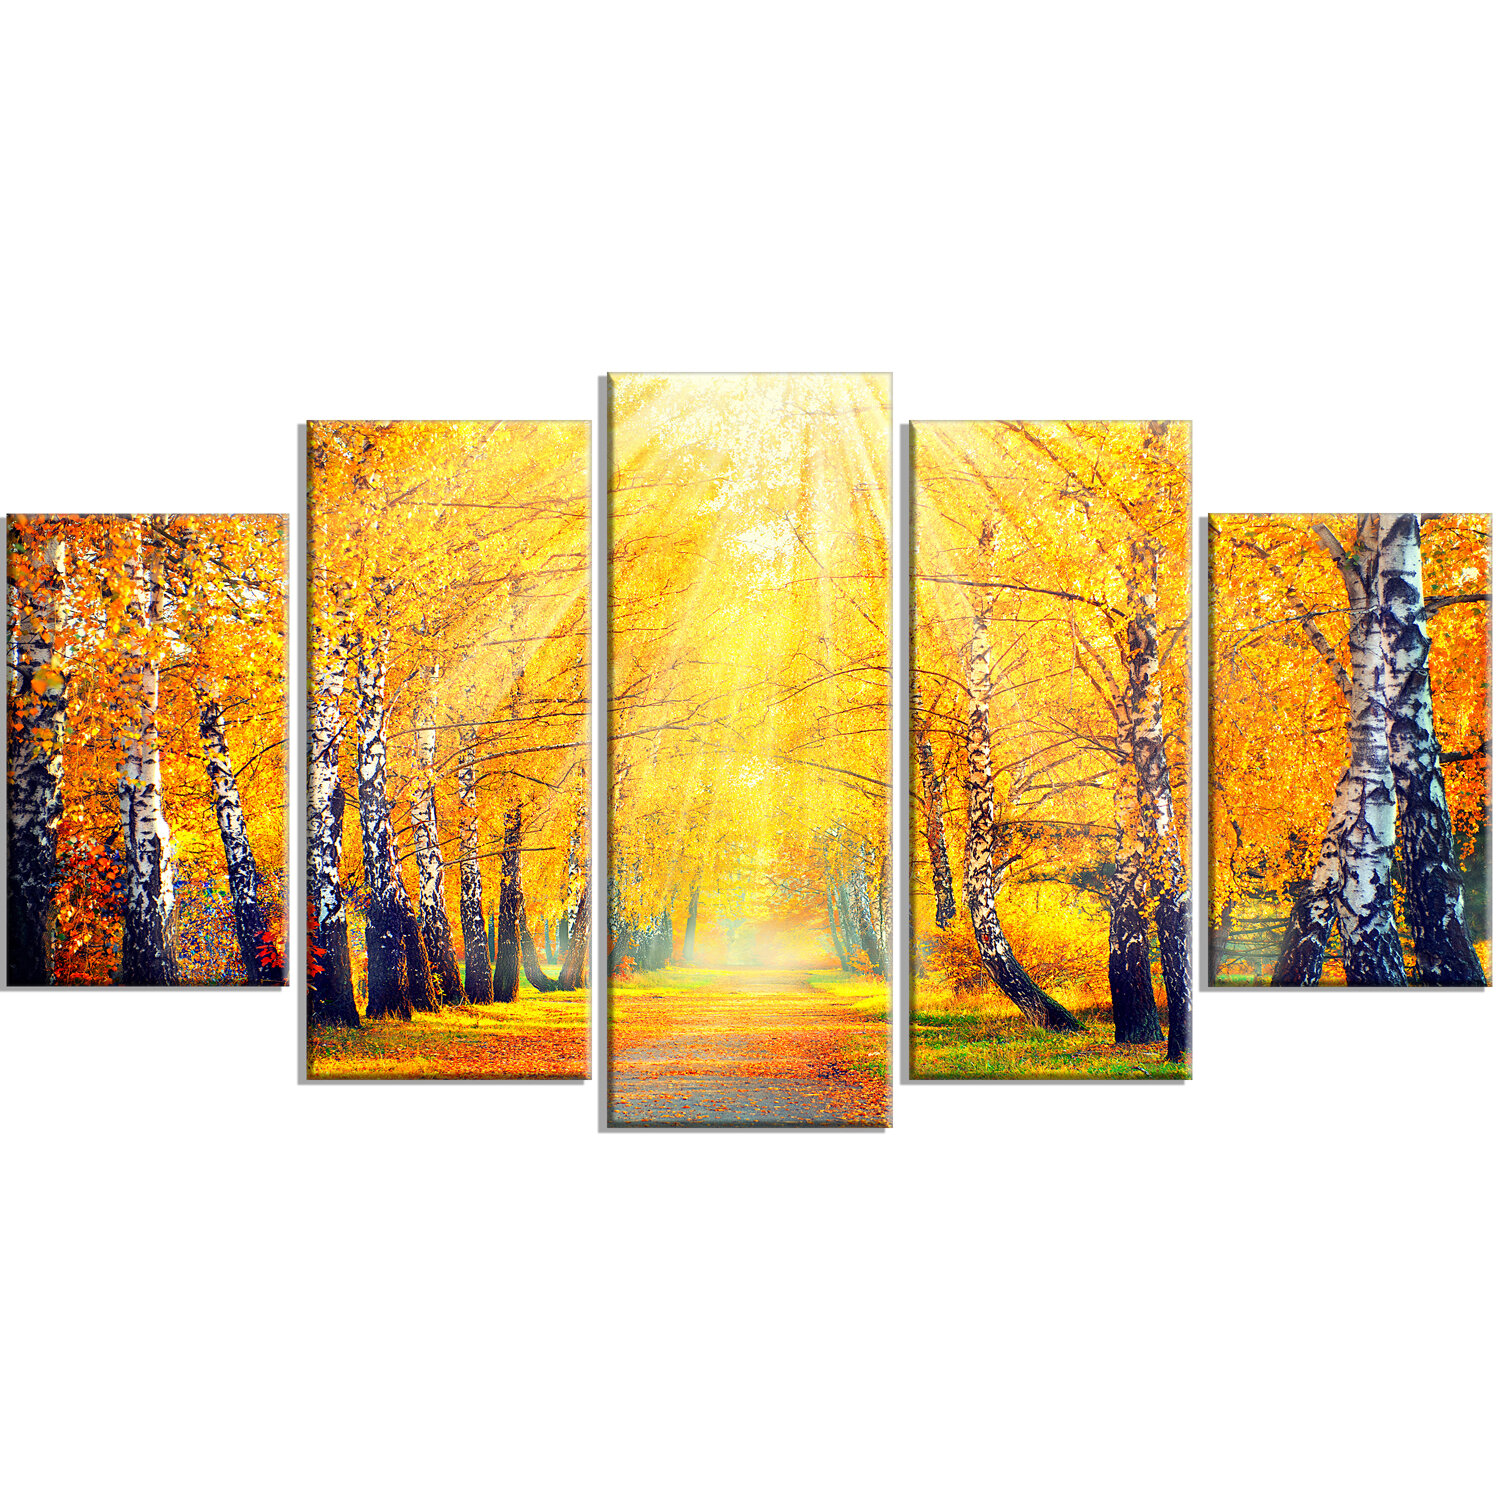 Designart Yellow Autumn Trees In Sunray 5 Piece Photographic Print On Wrapped Canvas Set Wayfair